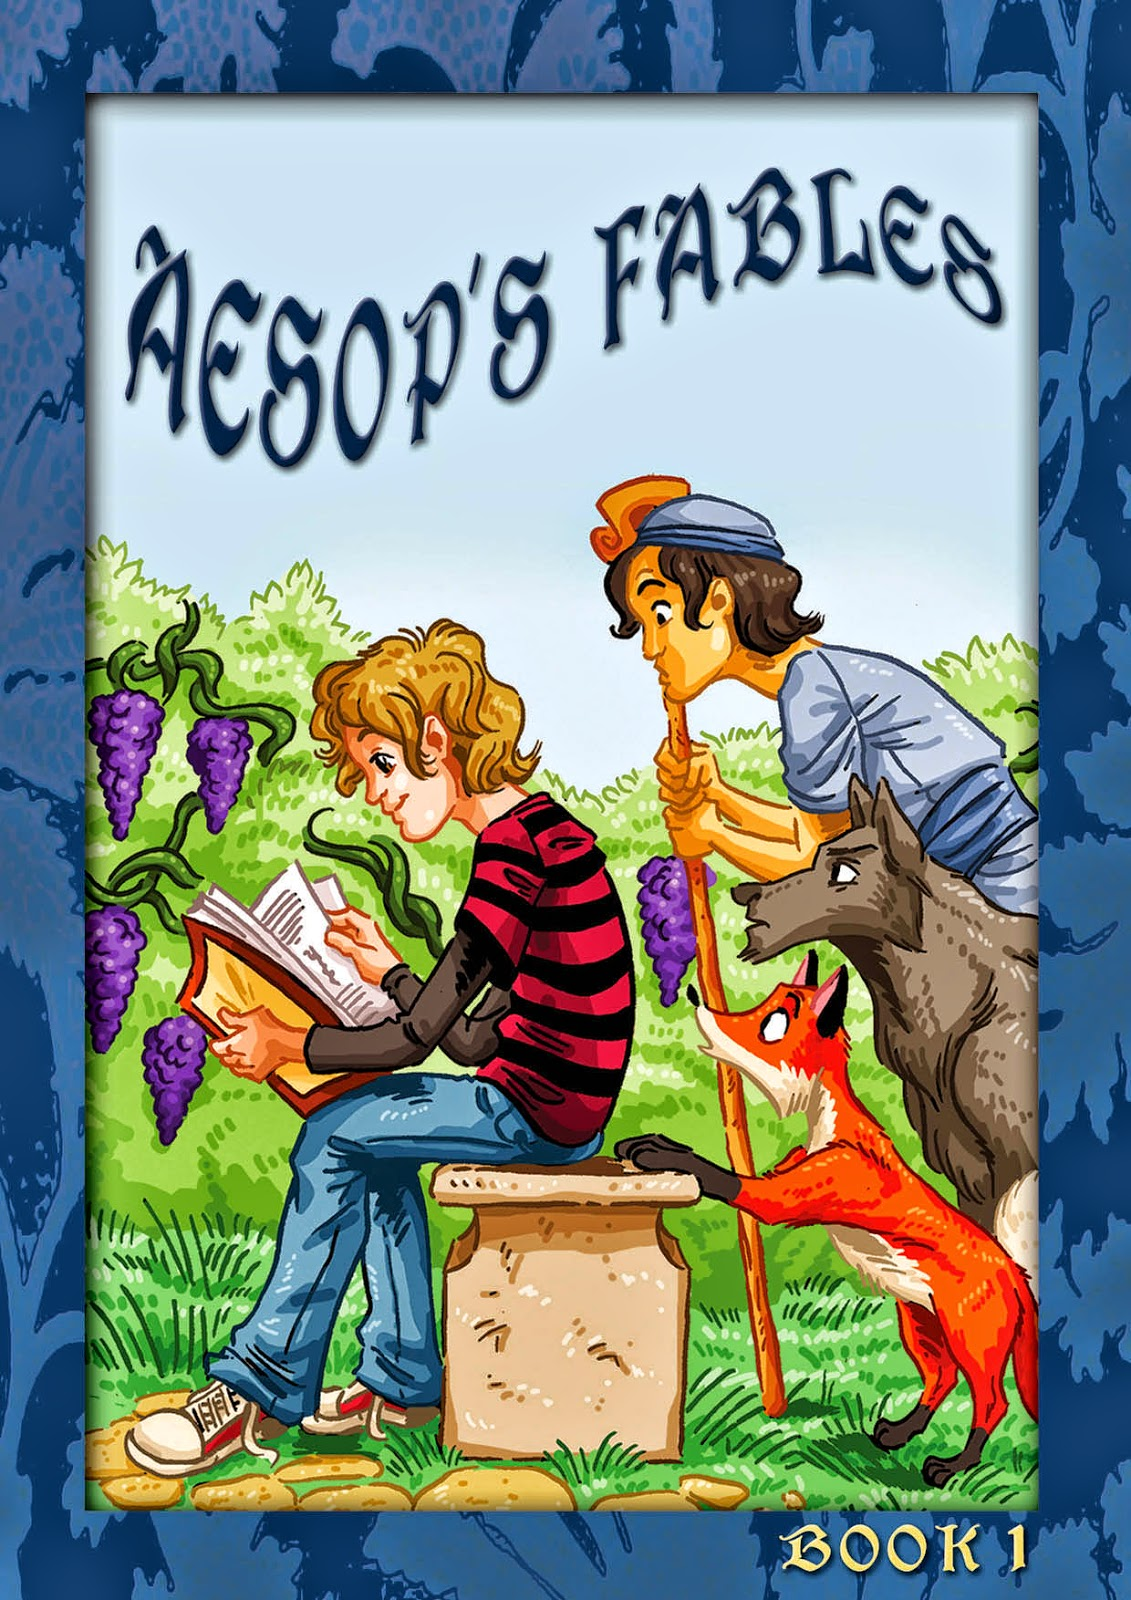 Aesop' Fables, Kindle, Online, Digital, Electronic